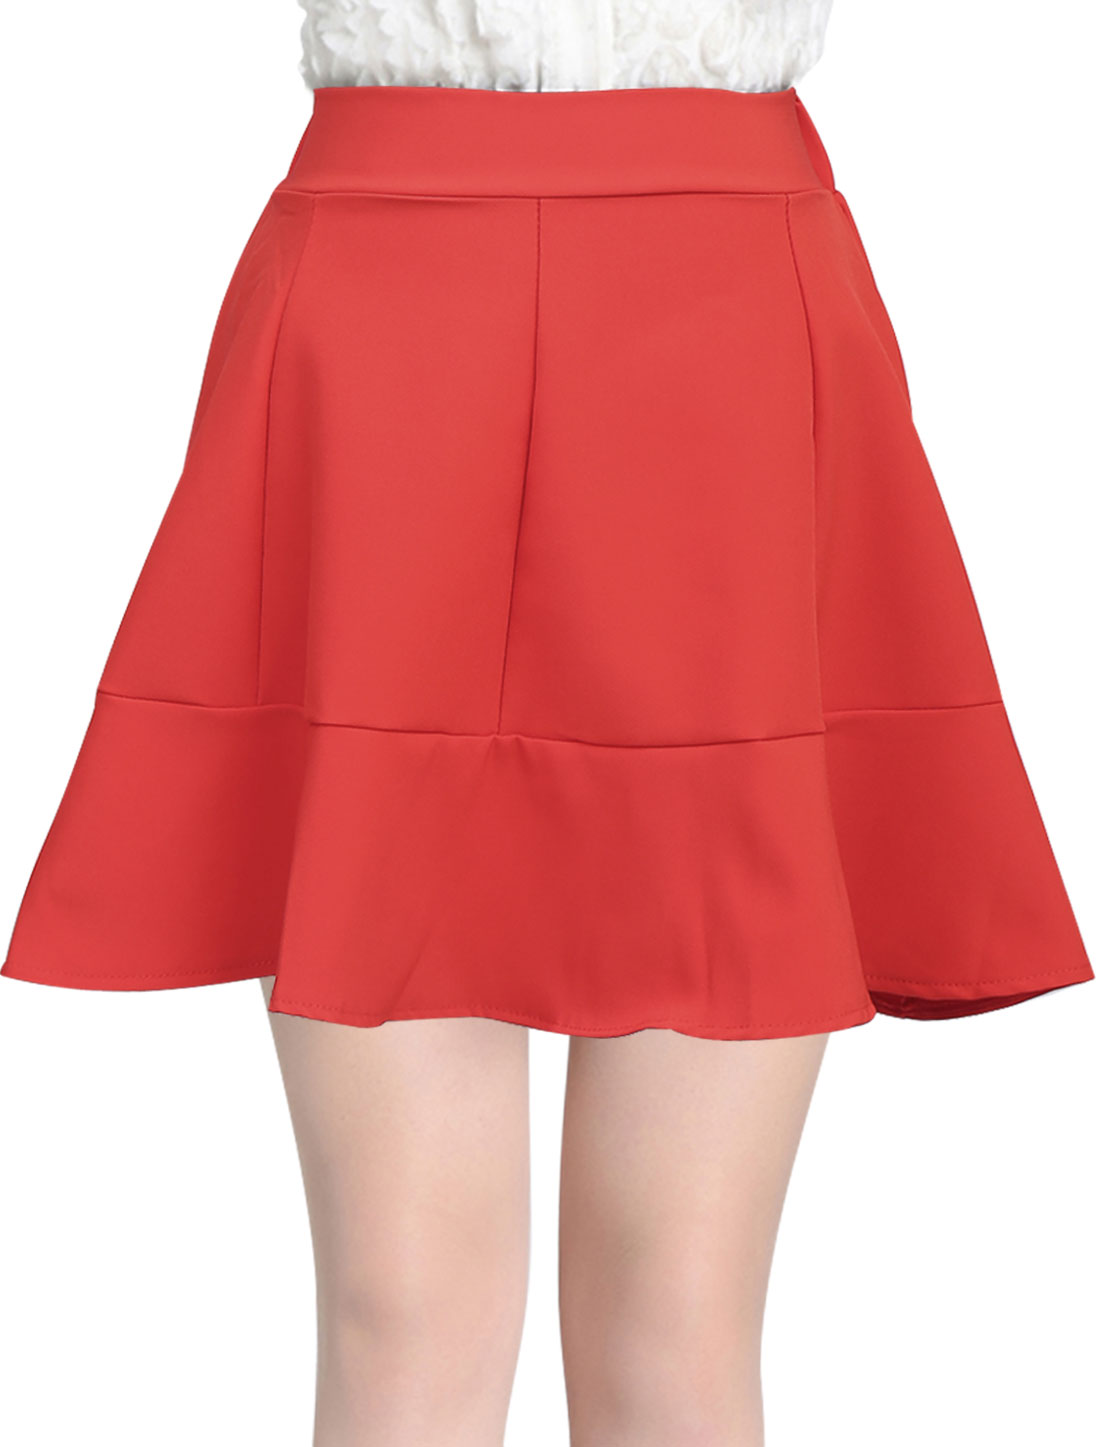 Women Summer Stretchy Waist Flouncing Hem Sweet Mini Skirt Red S